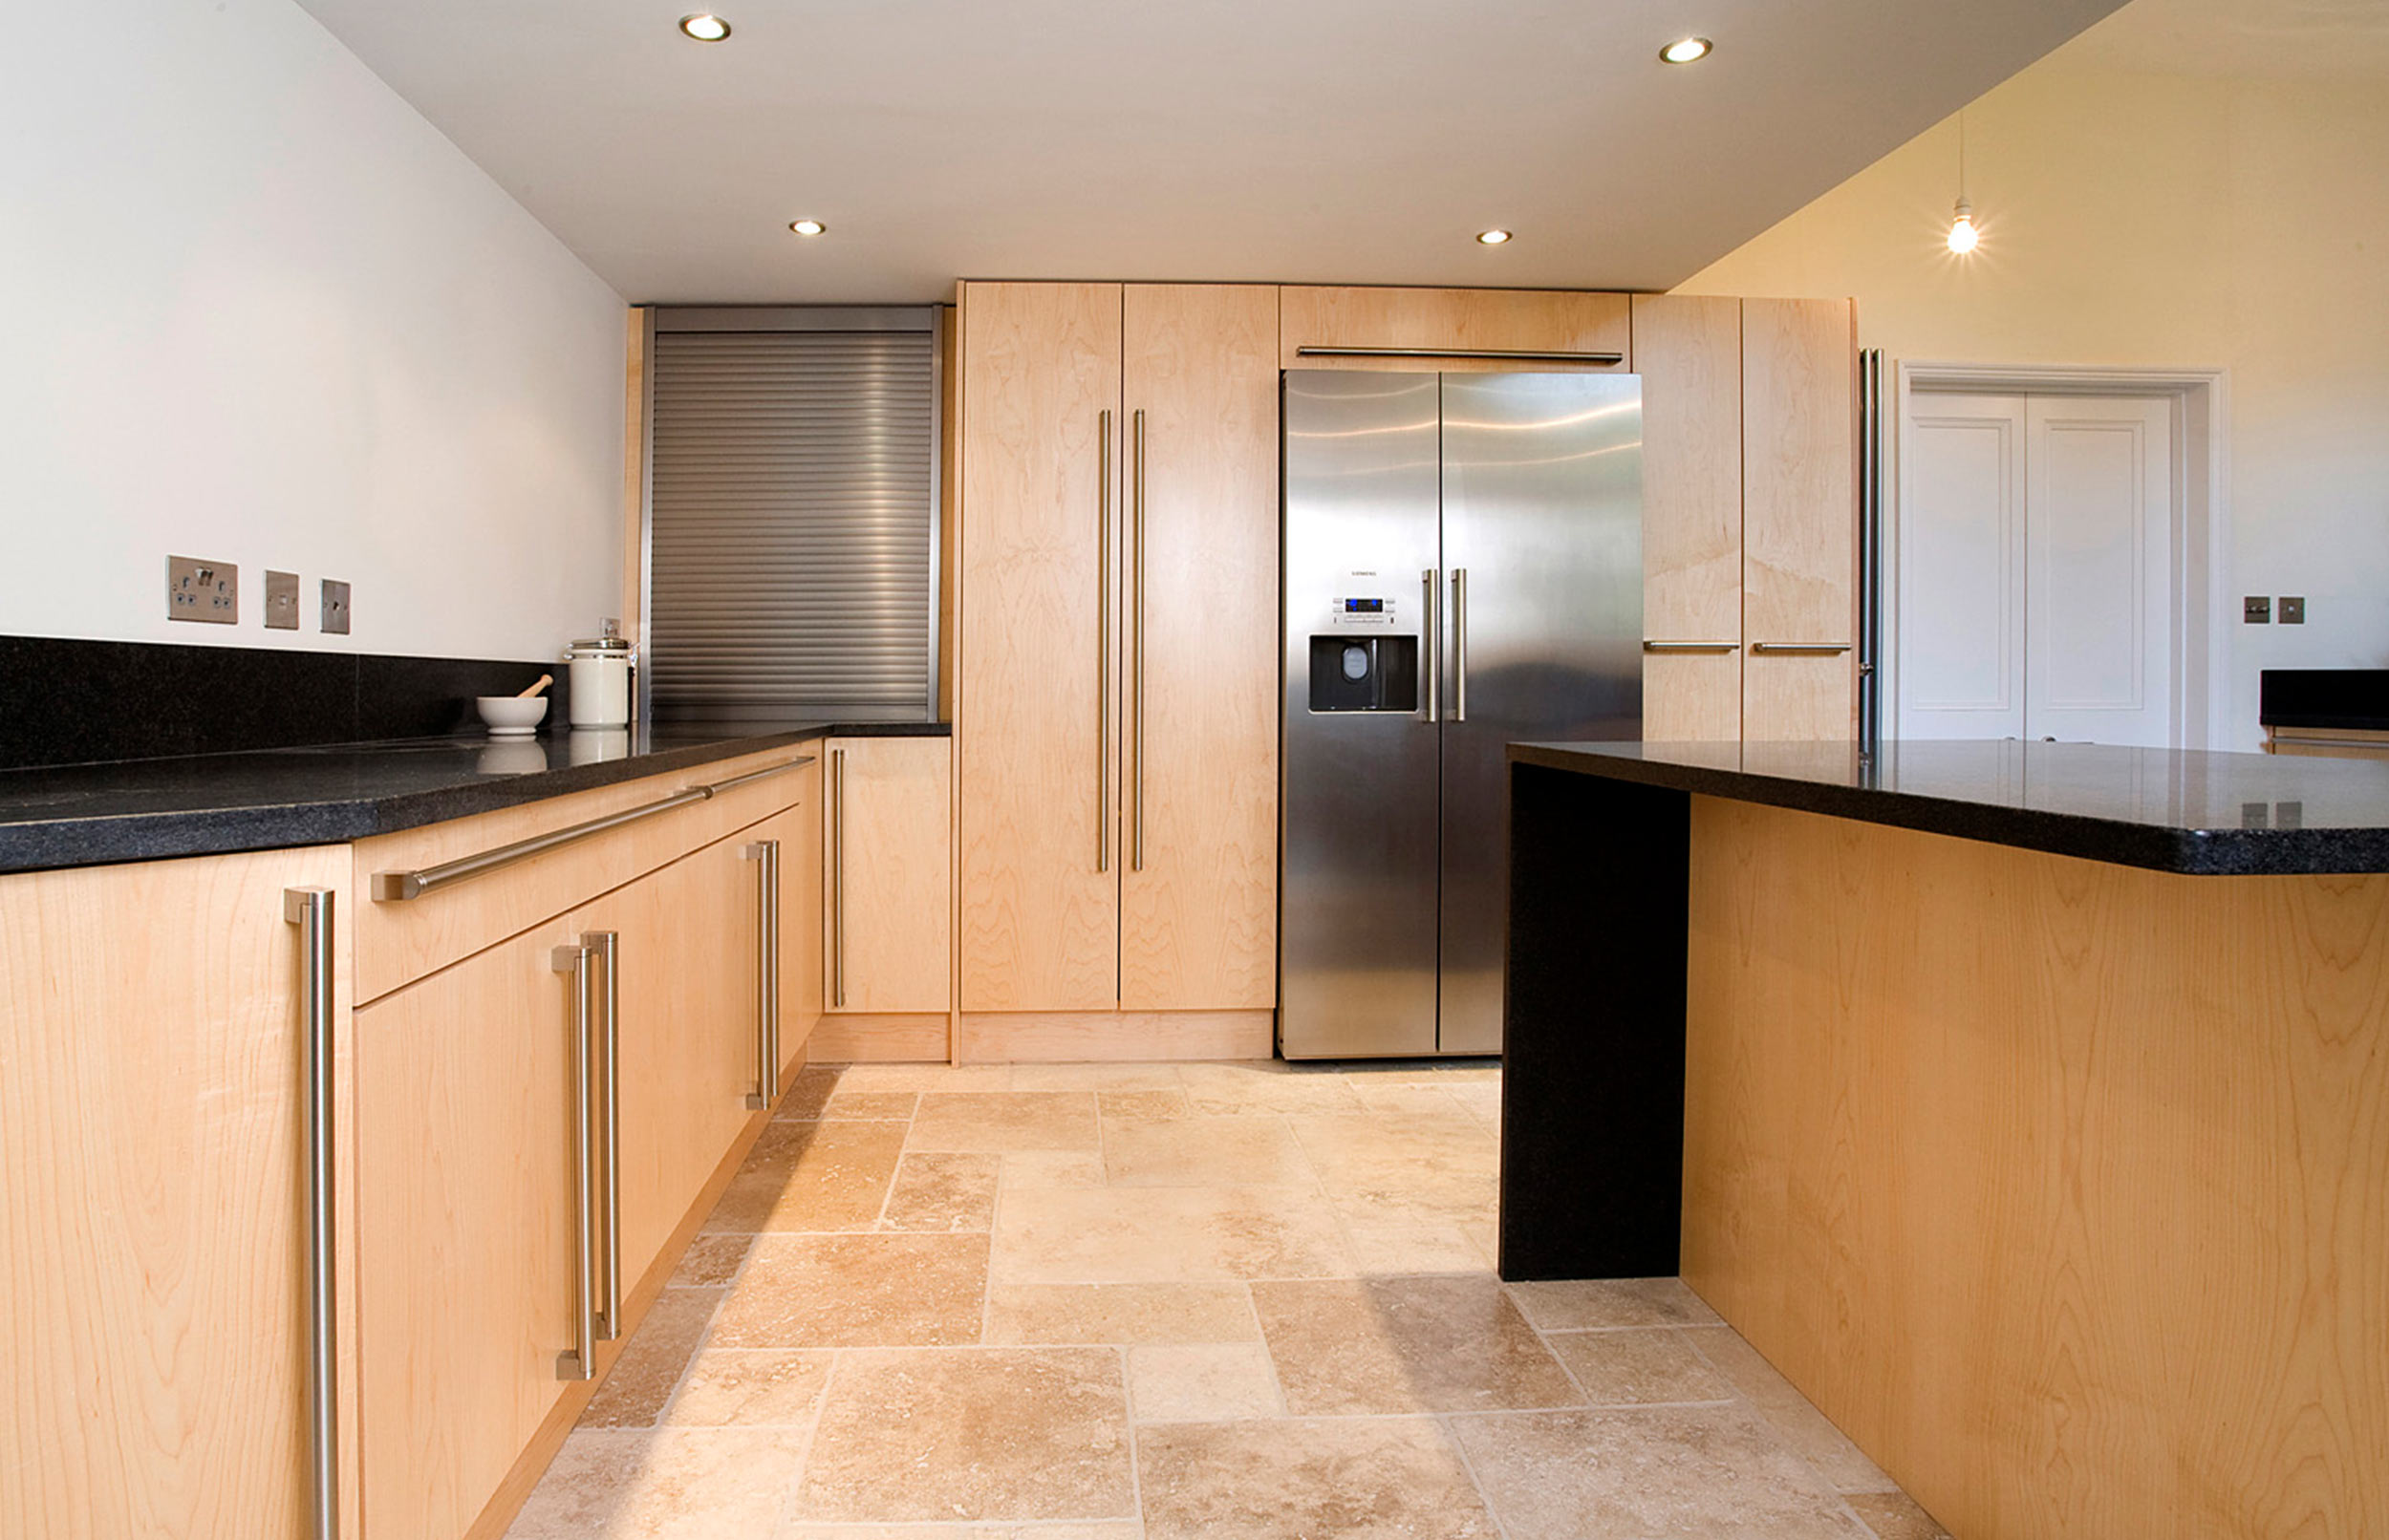 Contemporary Bespoke Kitchen for a City Property - alternative view